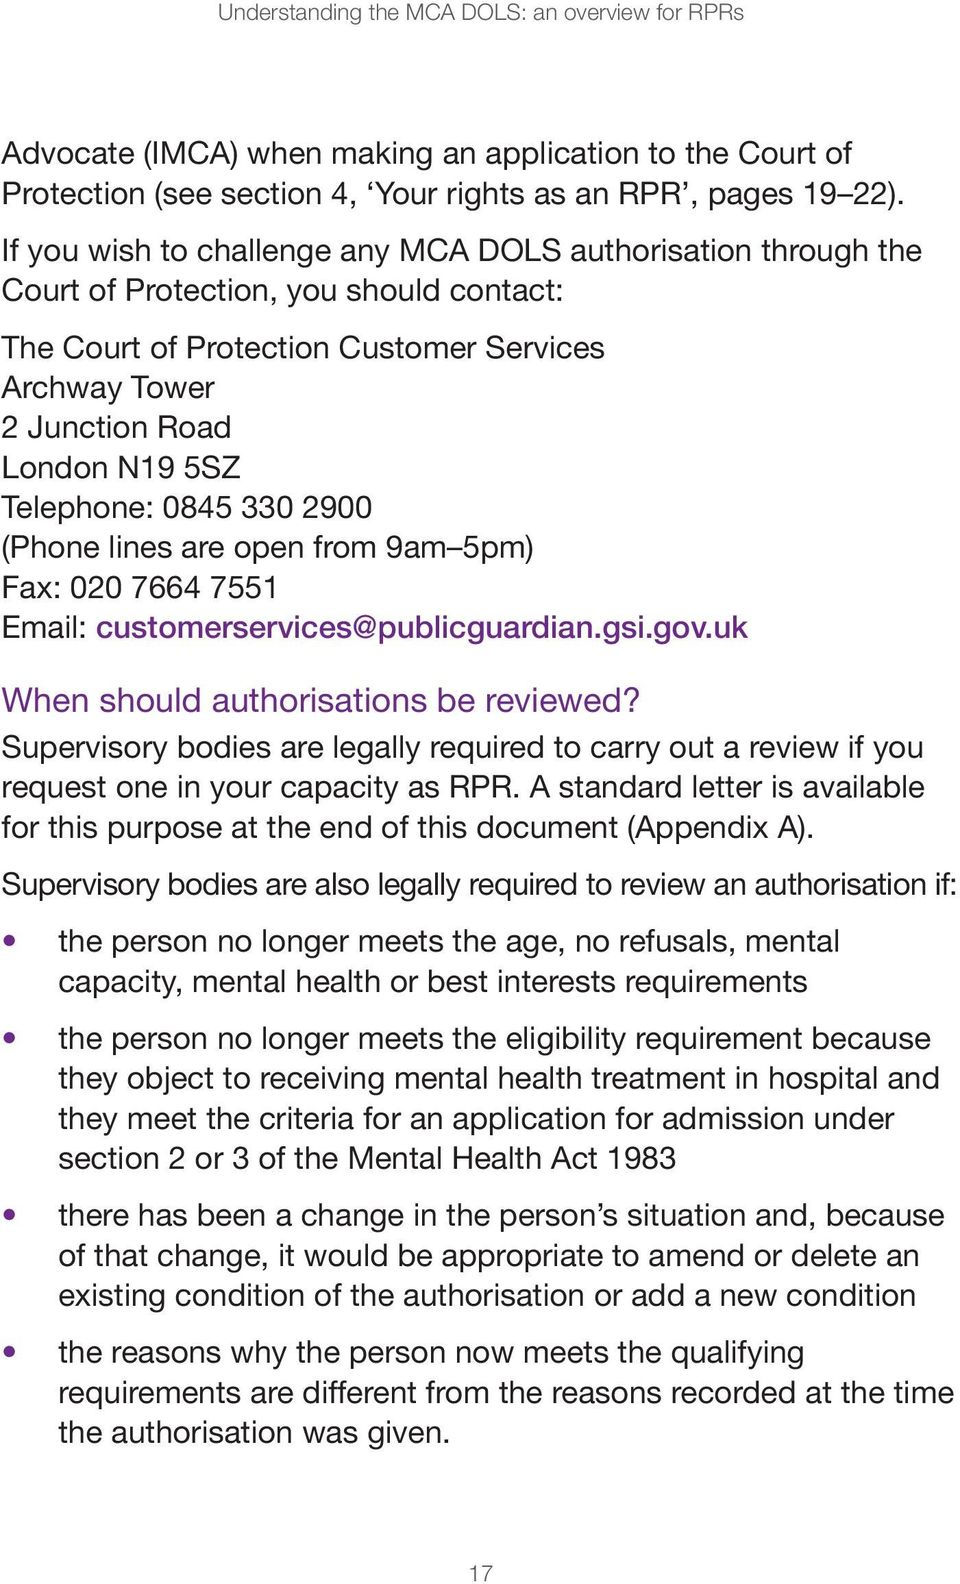 Telephone: 0845 330 2900 (Phone lines are open from 9am 5pm) Fax: 020 7664 7551 Email: customerservices@publicguardian.gsi.gov.uk When should authorisations be reviewed?